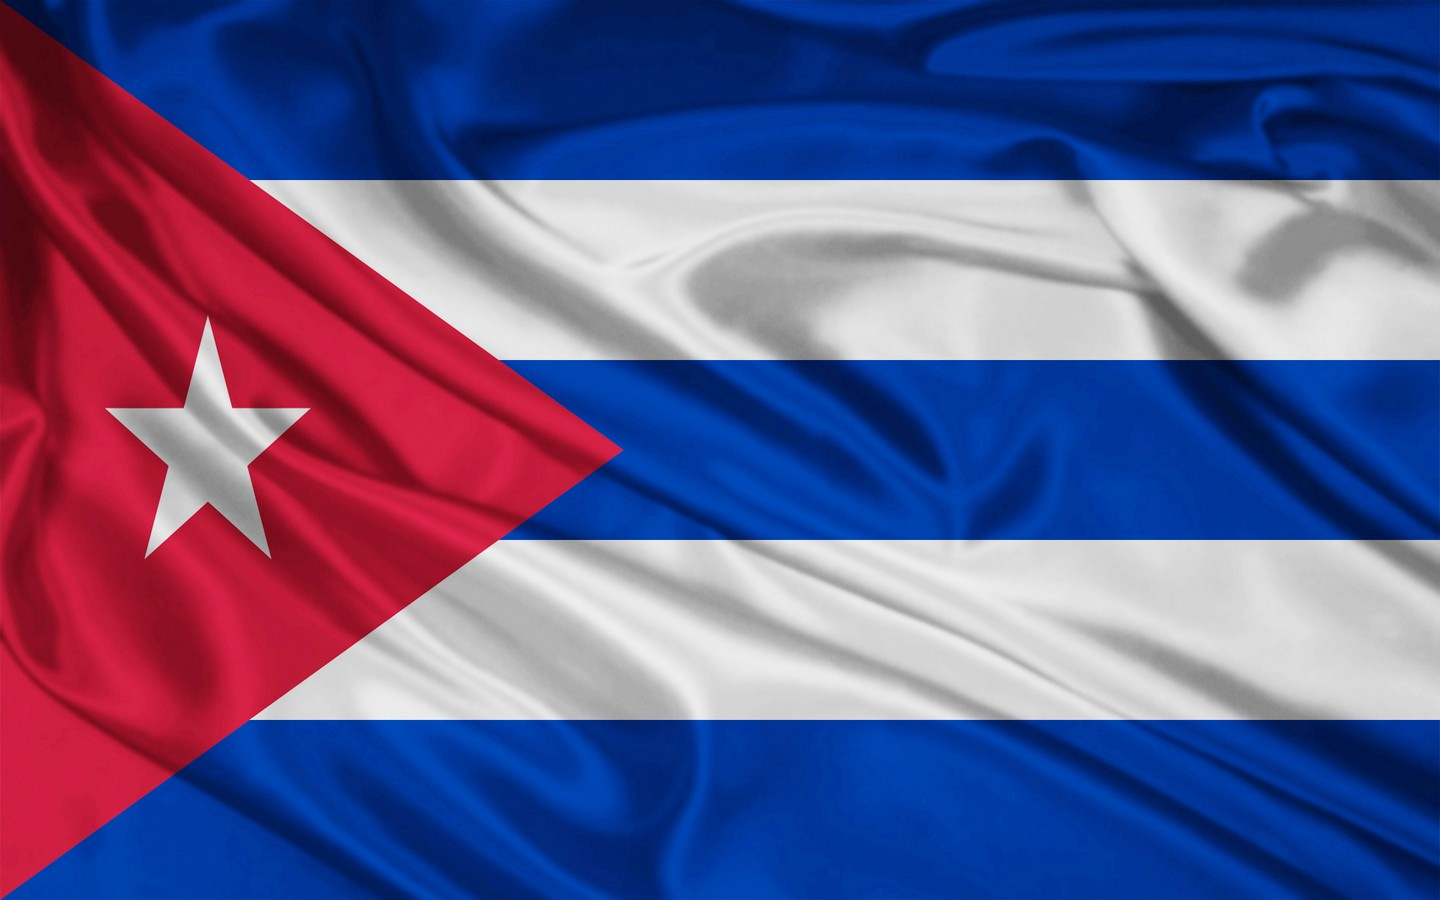 Cuba flag pictures for The flag is